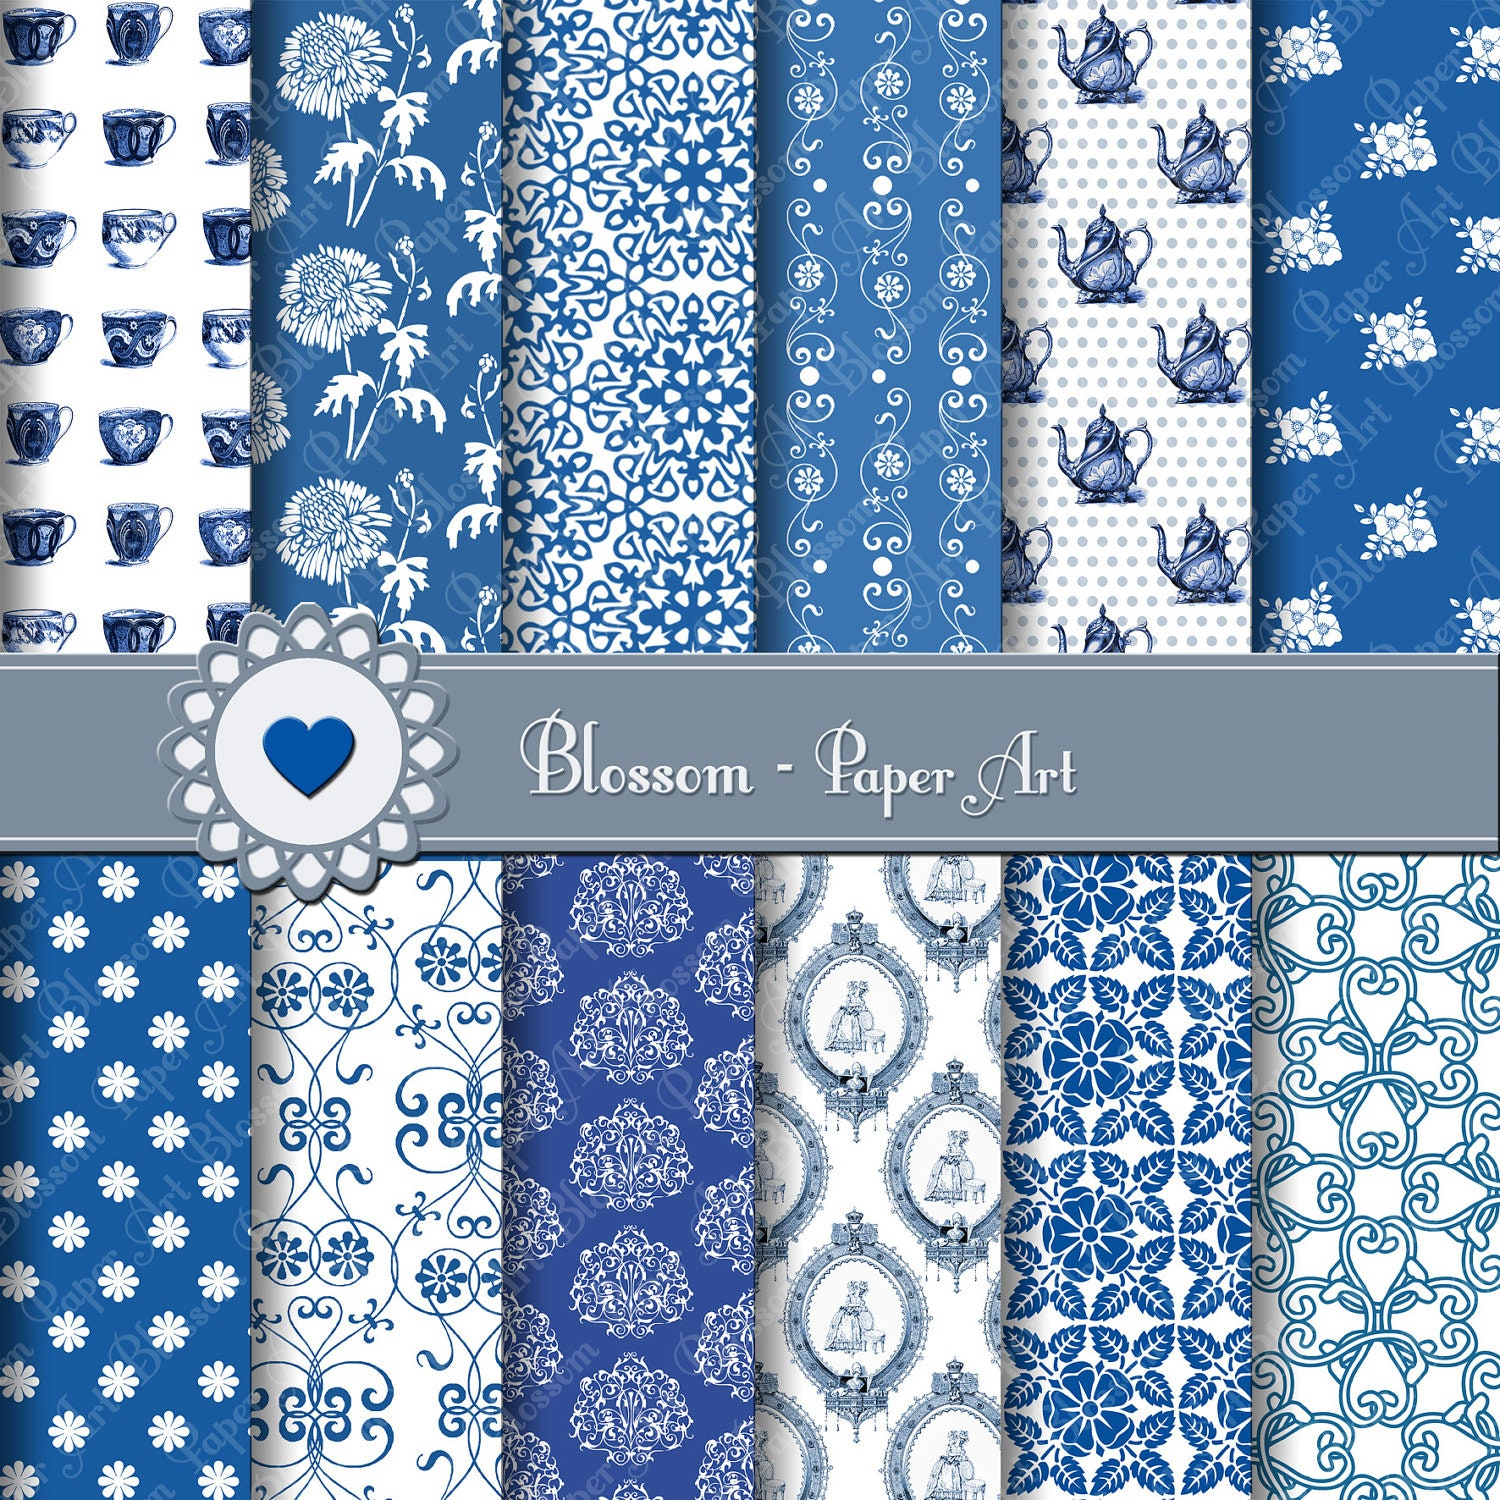 Scrapbook paper diy - Digital Paper Blue And White Porcelain Digital Scrapbooking Paper Vintage Papers Diy Personal And Commercial Use 1394